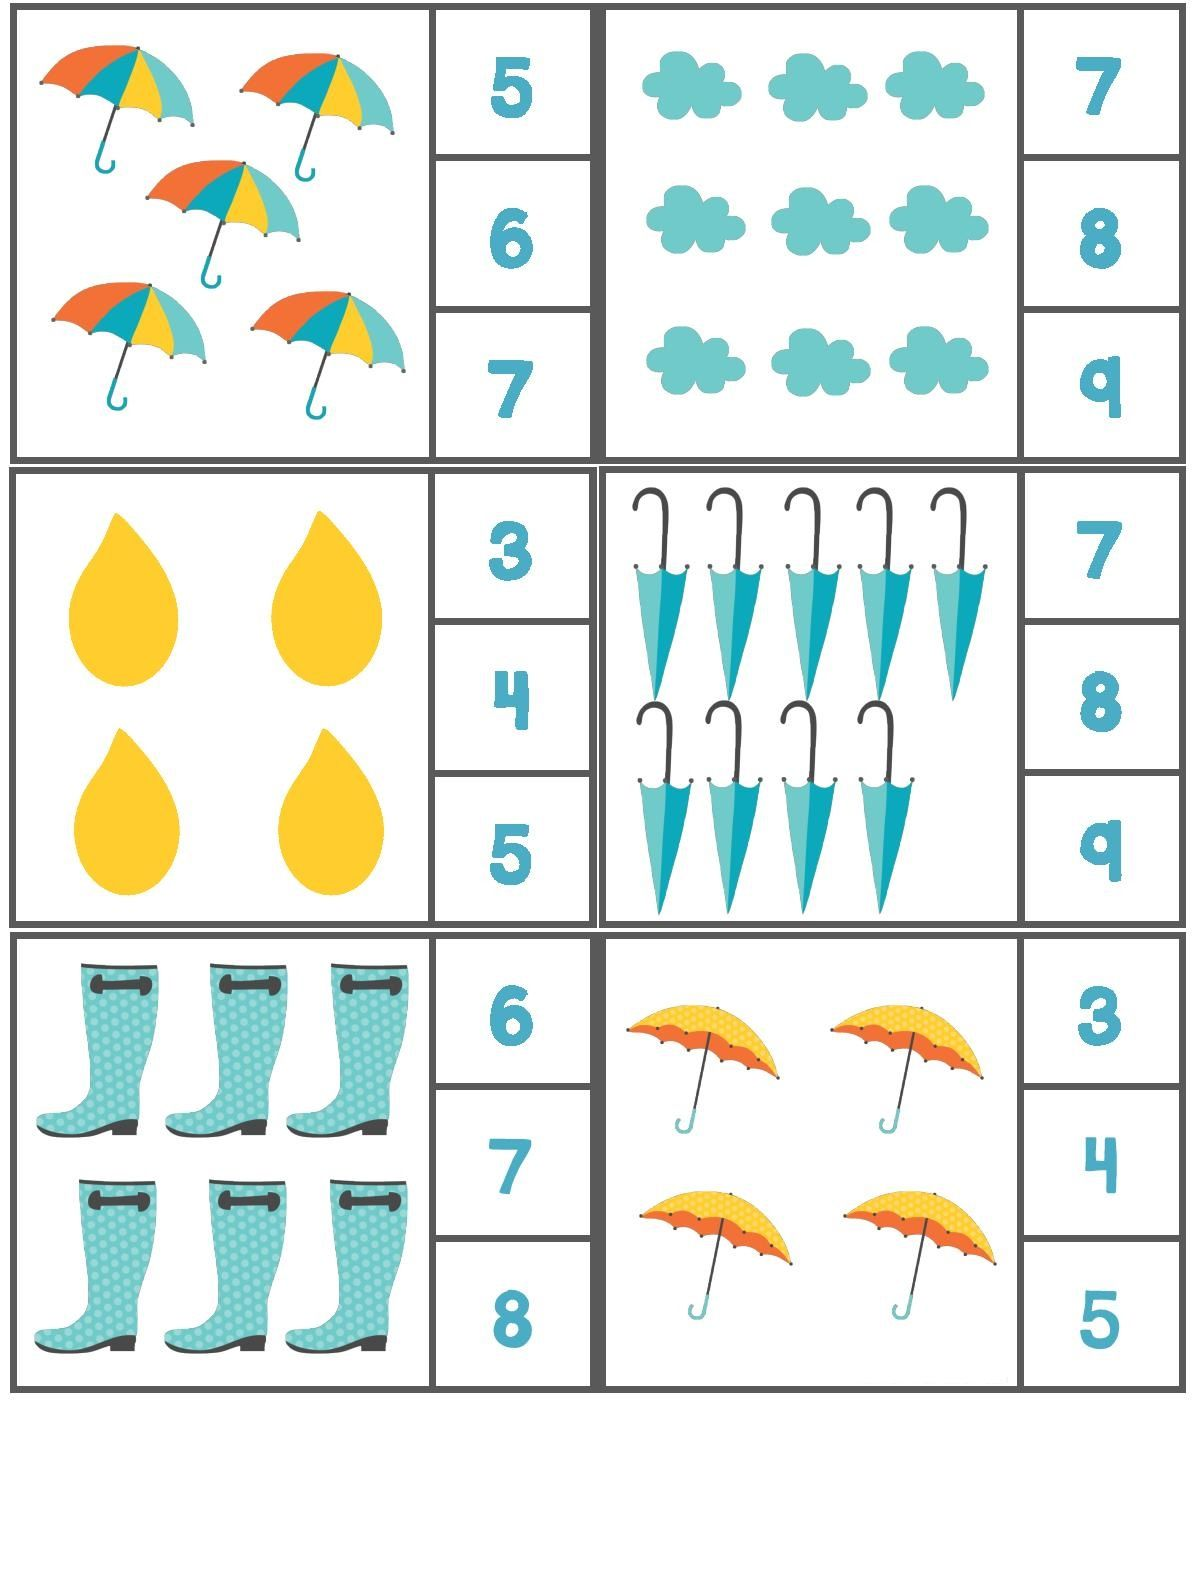 Rain Themed Counting Activity With Clothespin 2